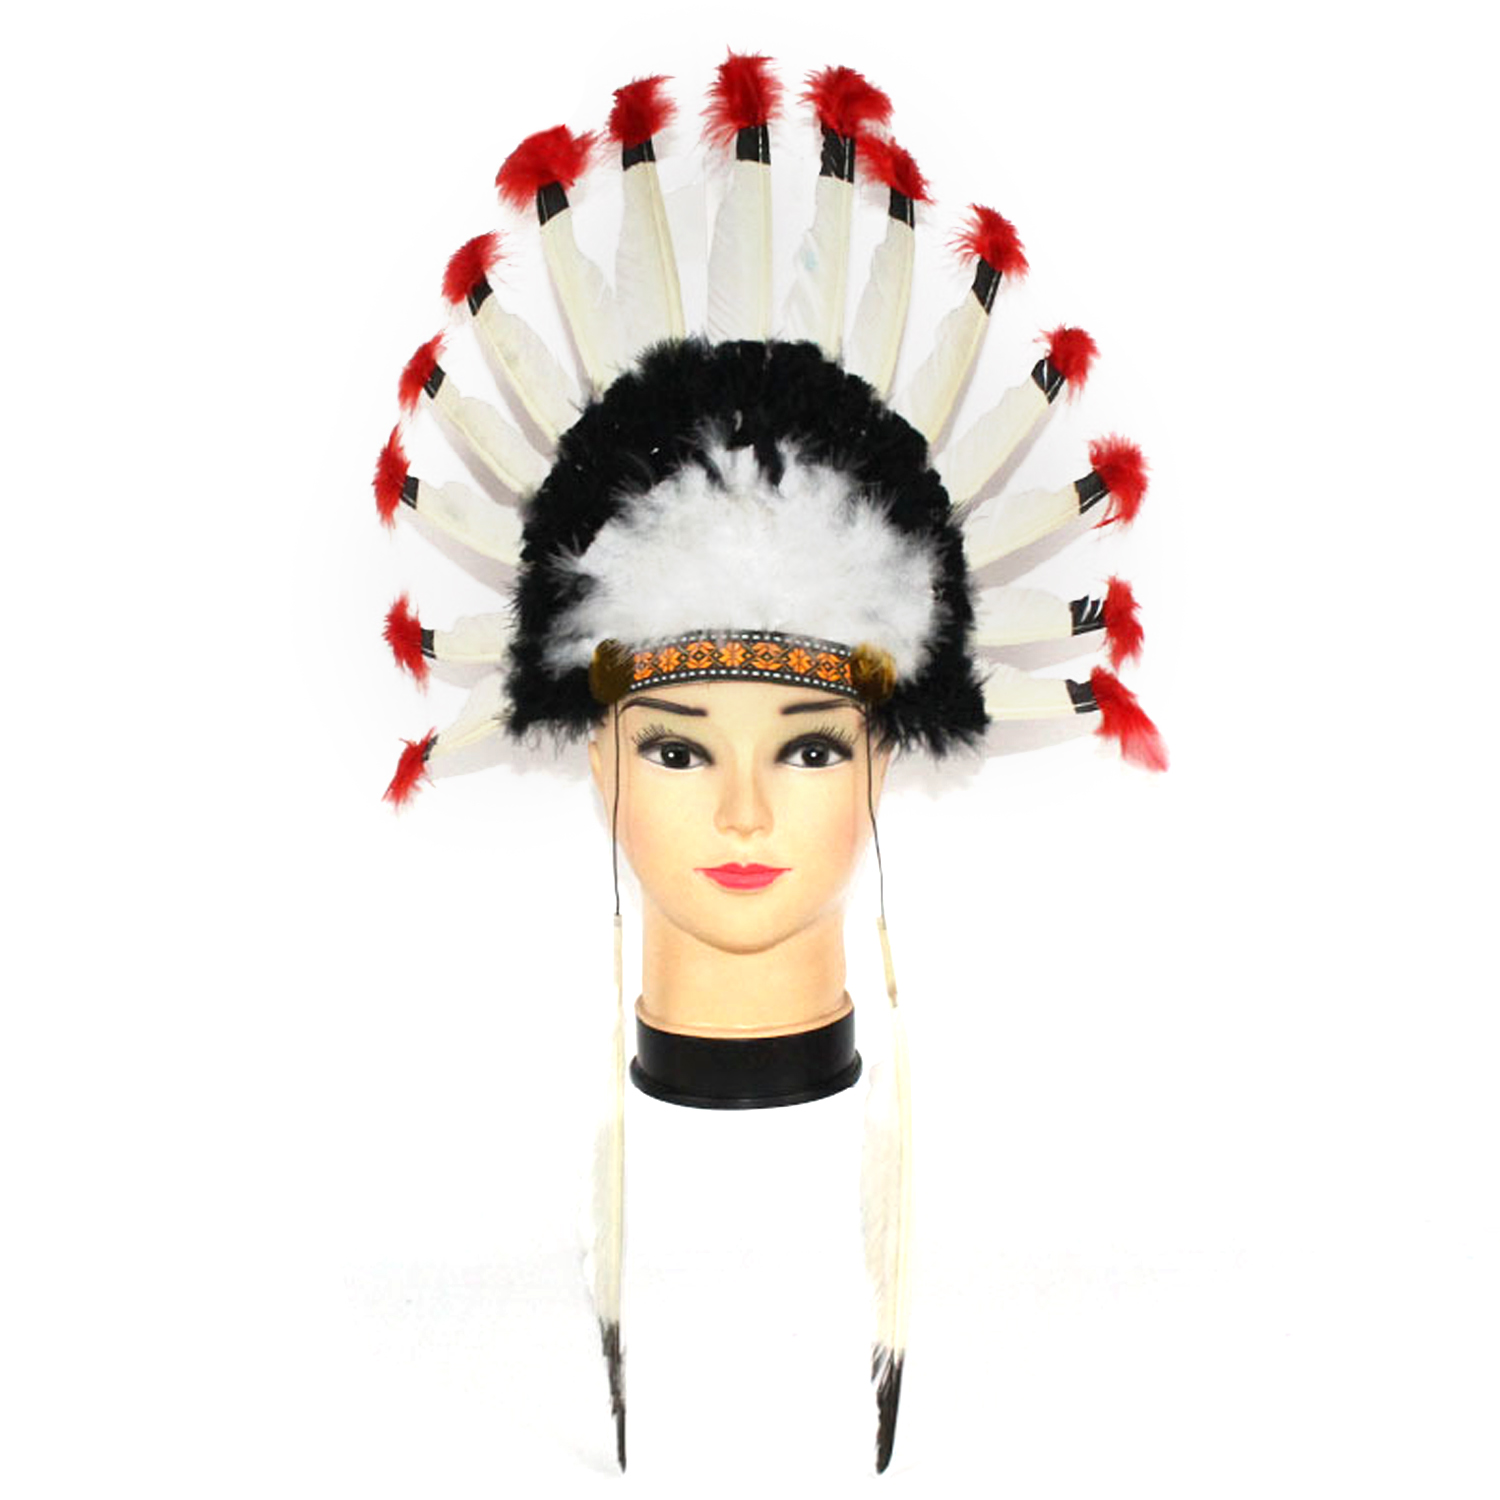 Indian Style Feather Headband Headpiece Headdress Toy For Kids Adults Thanksgiving Masquerade Cosplay Party Costume